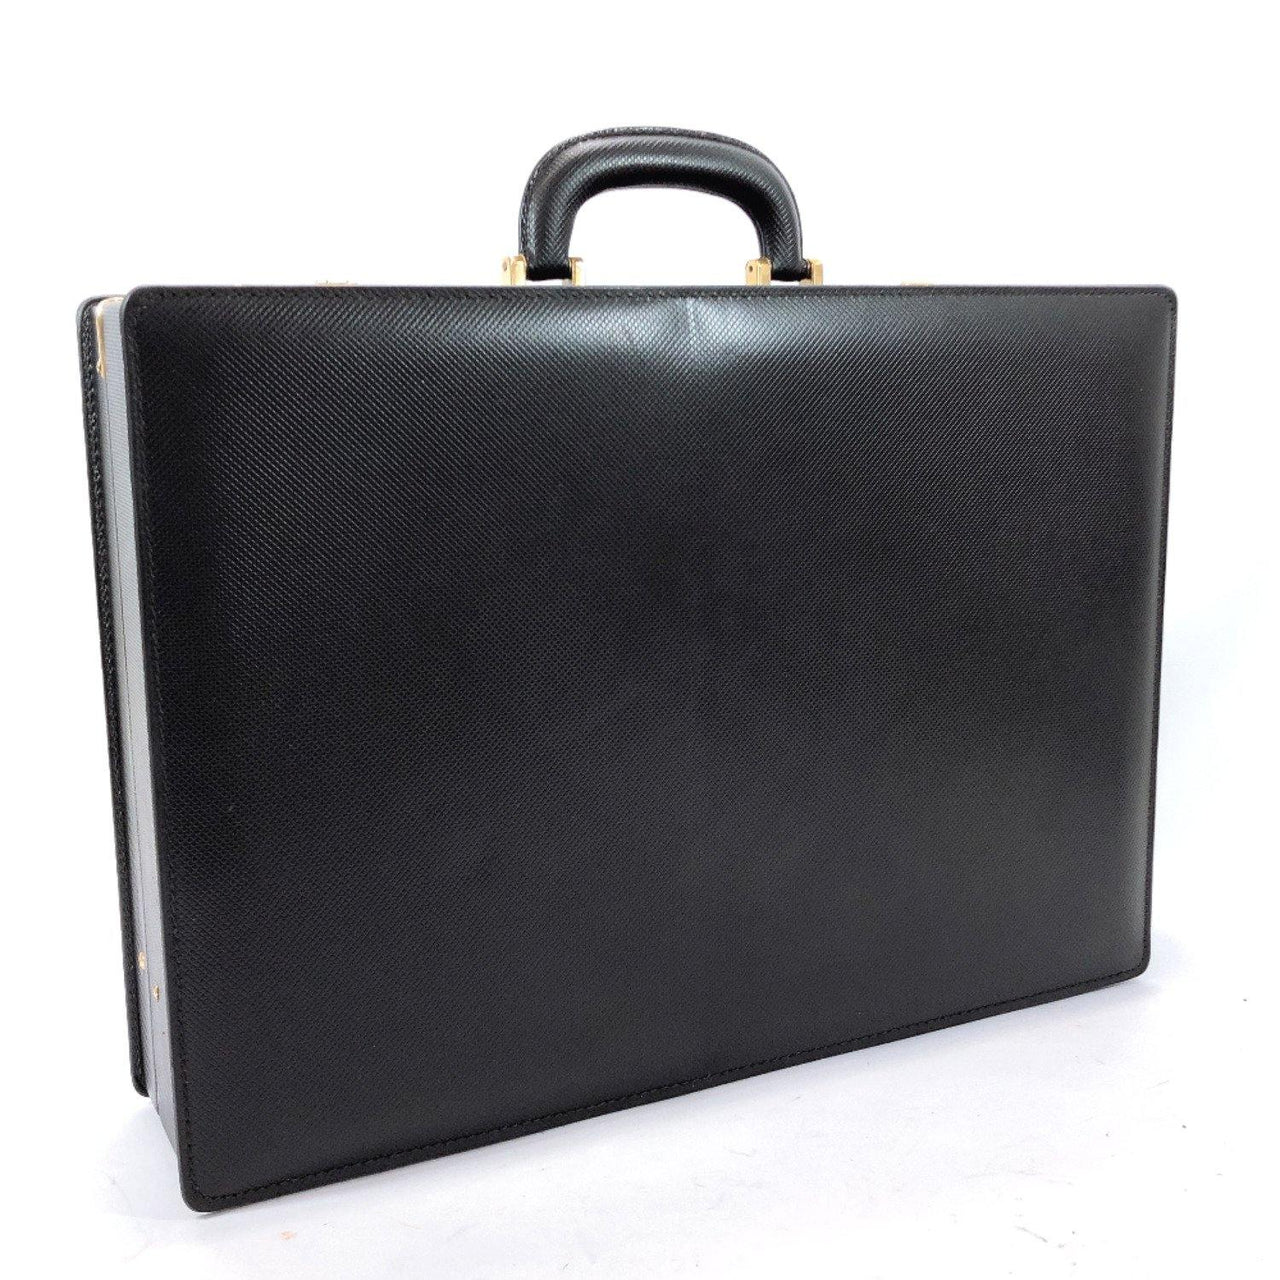 BOTTEGAVENETA Business bag Attache case leather black mens Used - JP-BRANDS.com